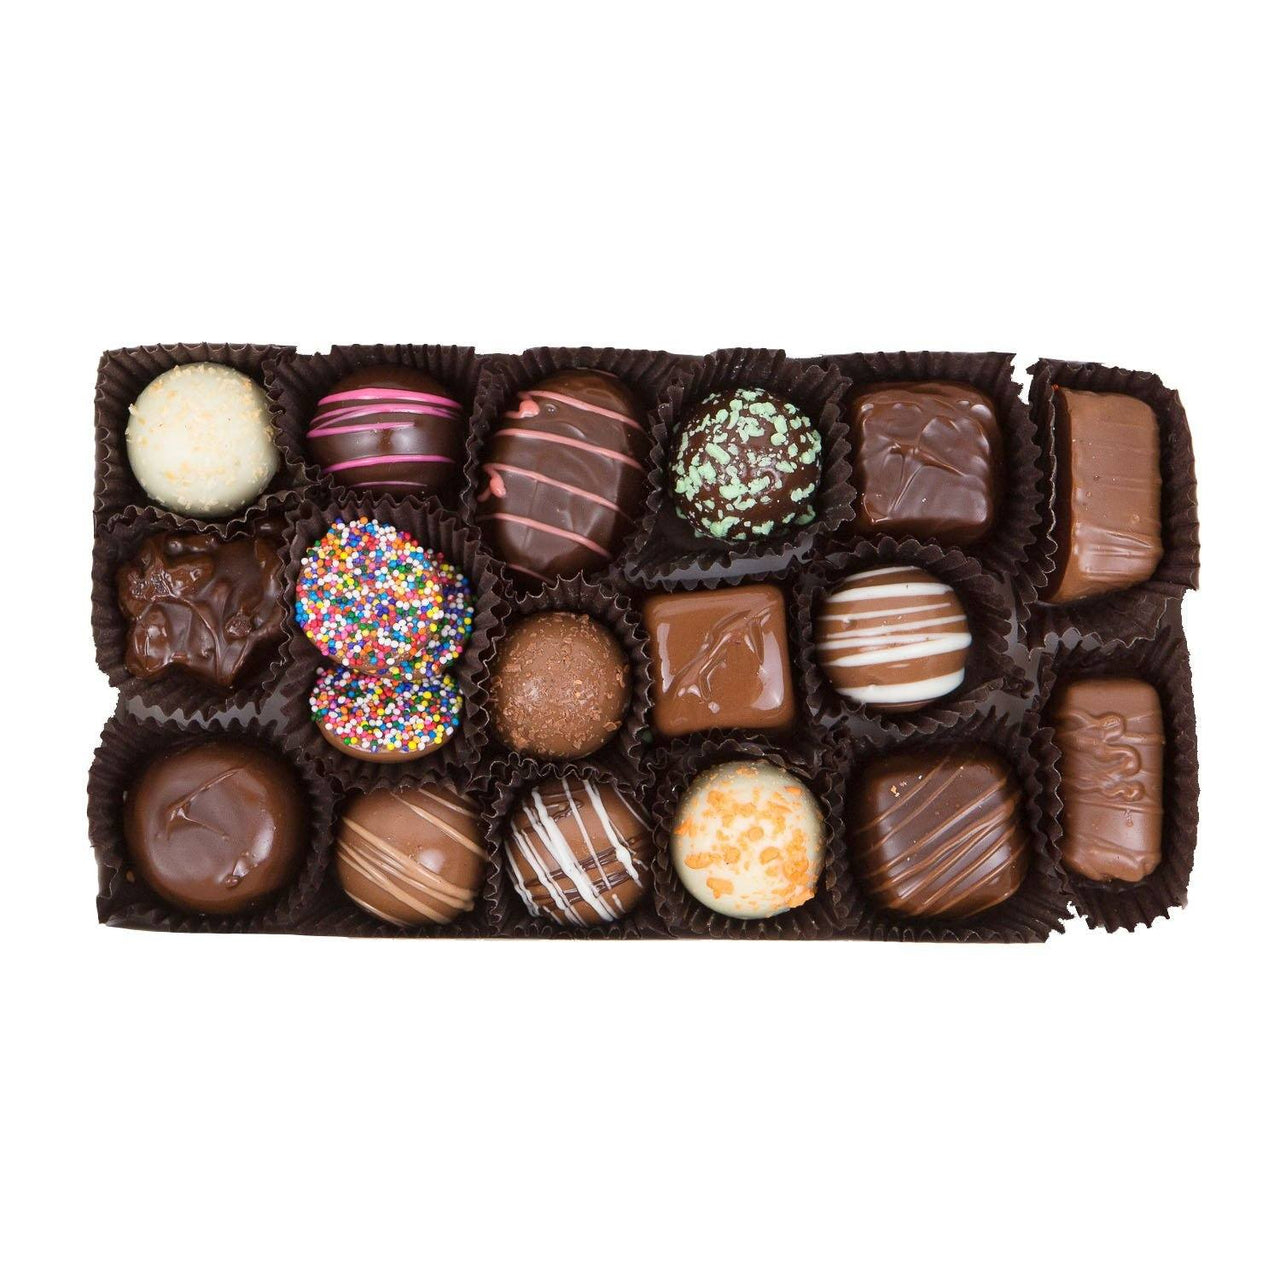 White Elephant Christmas - Chocolate Assortment Gift Box - Jackie's Chocolate